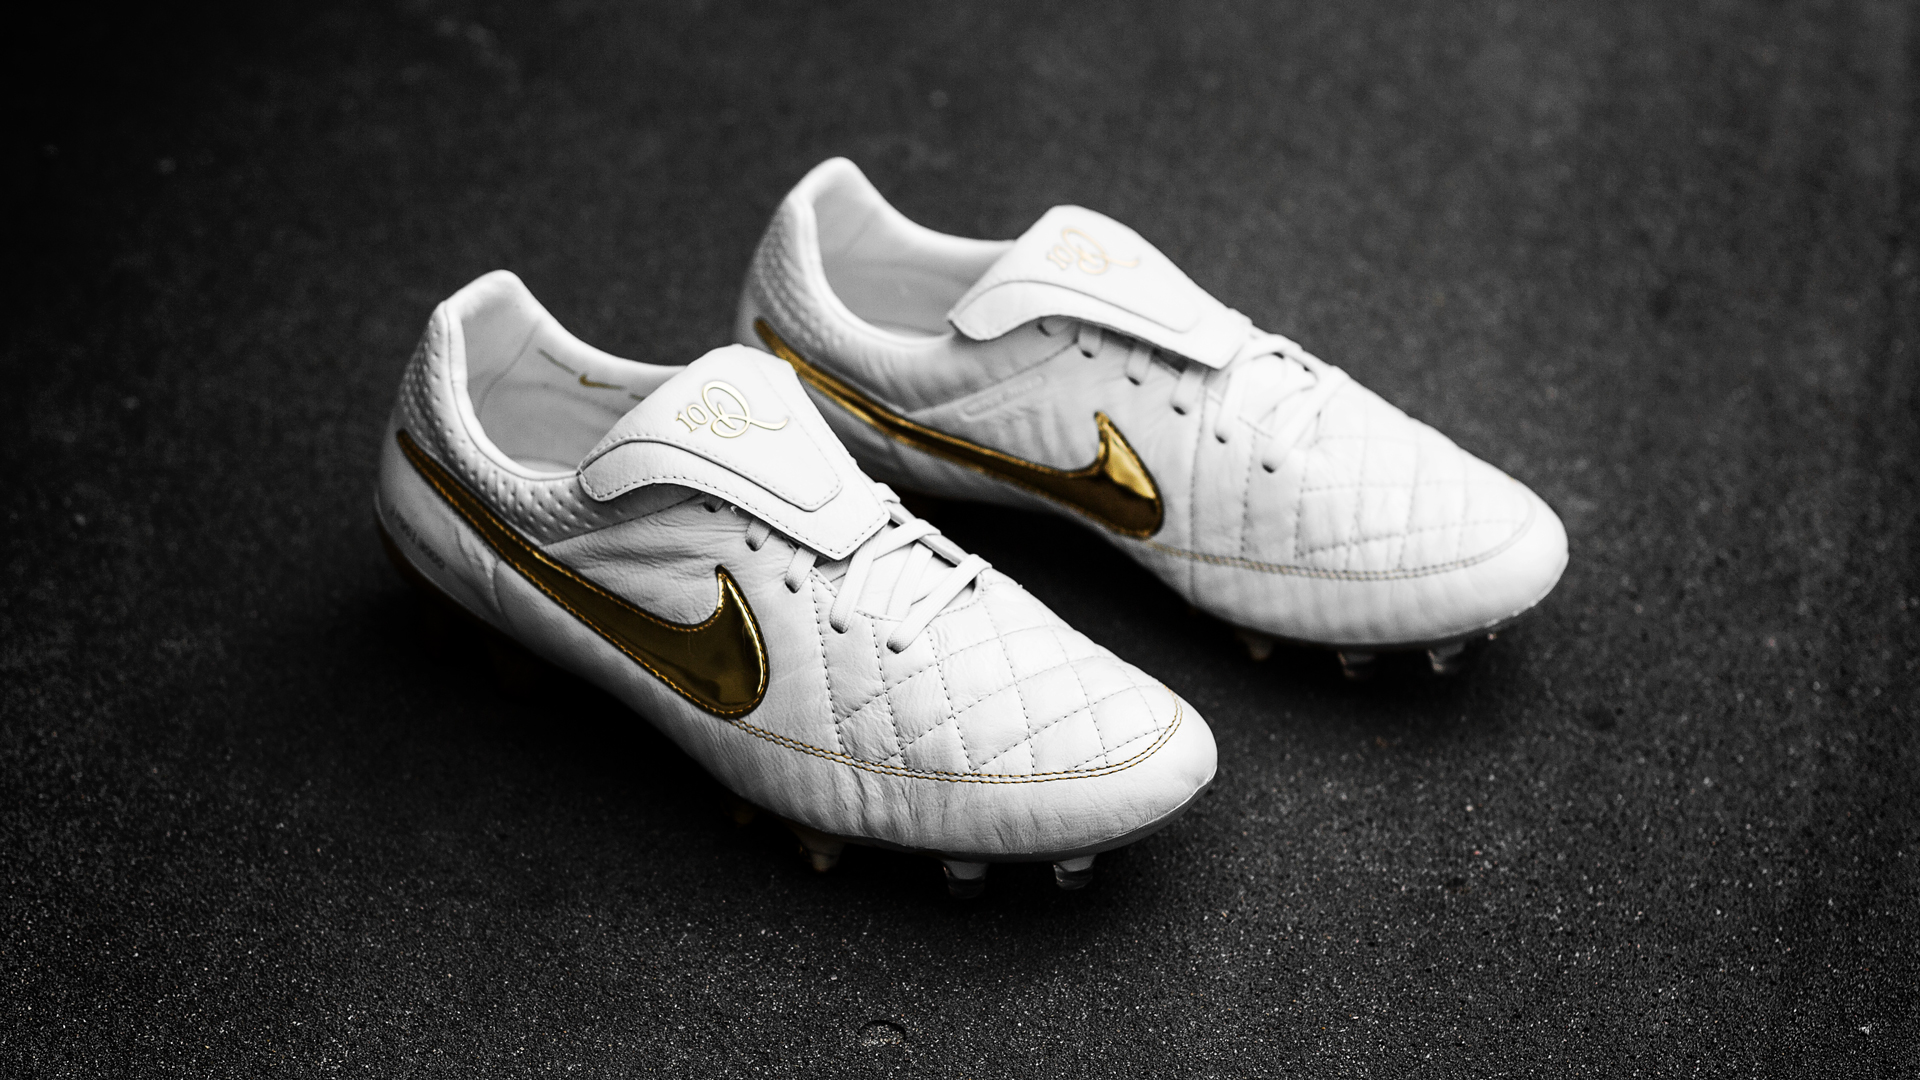 premium selection 6adc6 1bf0f Nike Tiempo Legend  Touch of Gold  har landat!